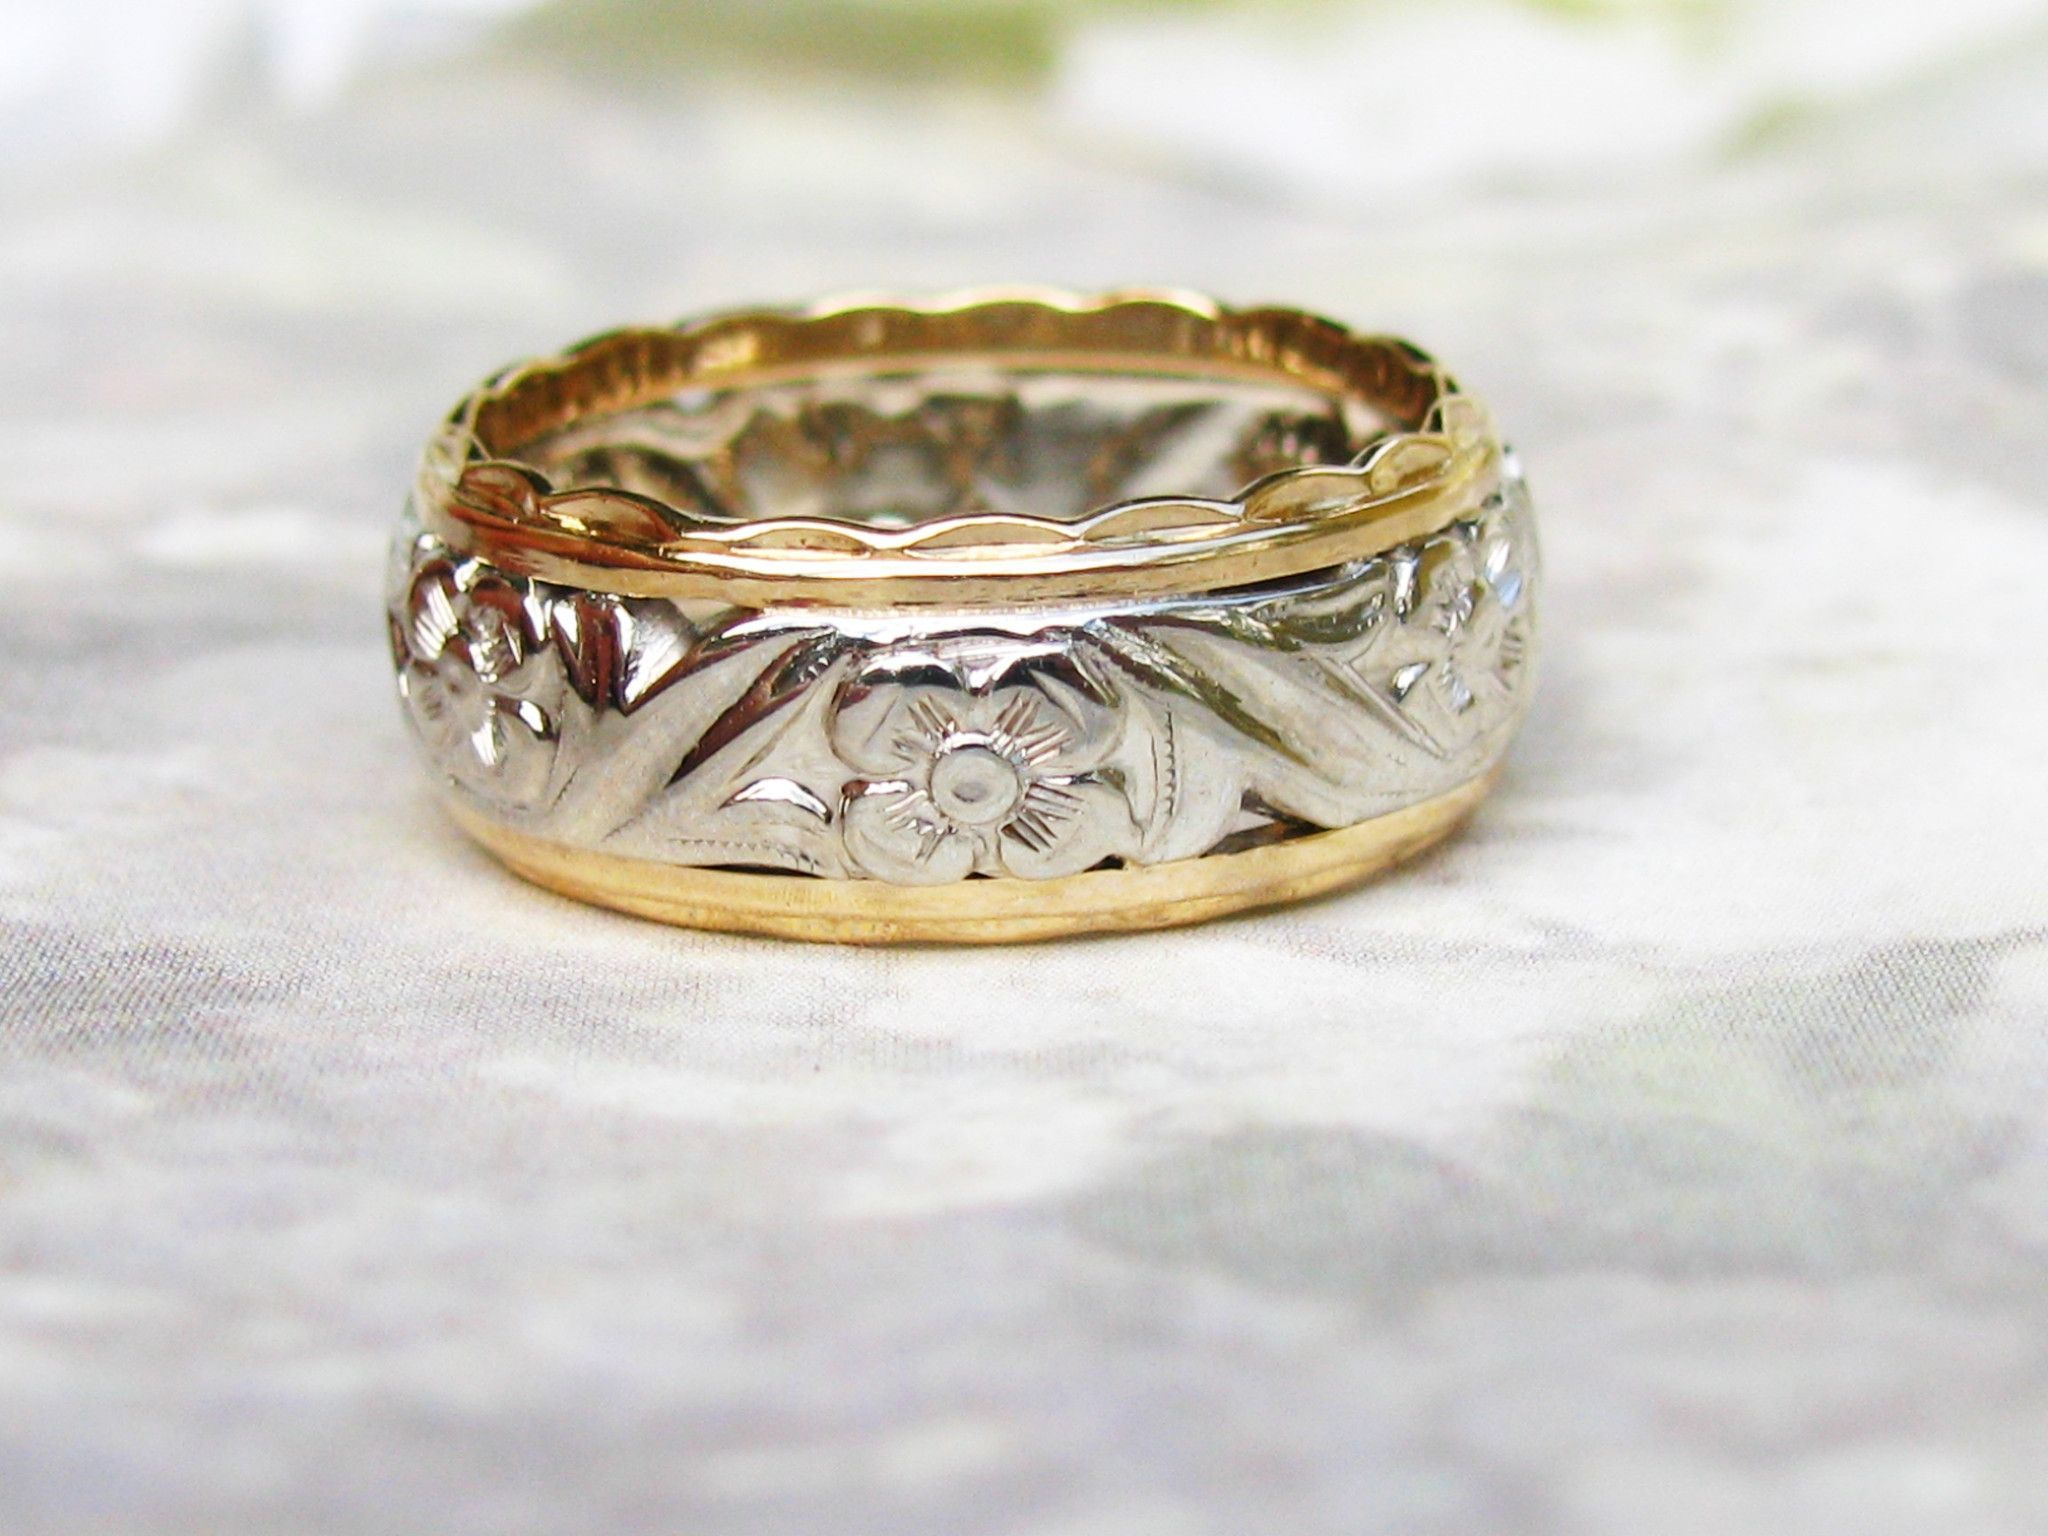 Vintage Orange Blossom Wide Wedding Band 14k Two Tone Gold Floral Design Ladies Wedding Ring Gold Stacking Wedding Rings For Women Jewelry Lover Vintage Jewels